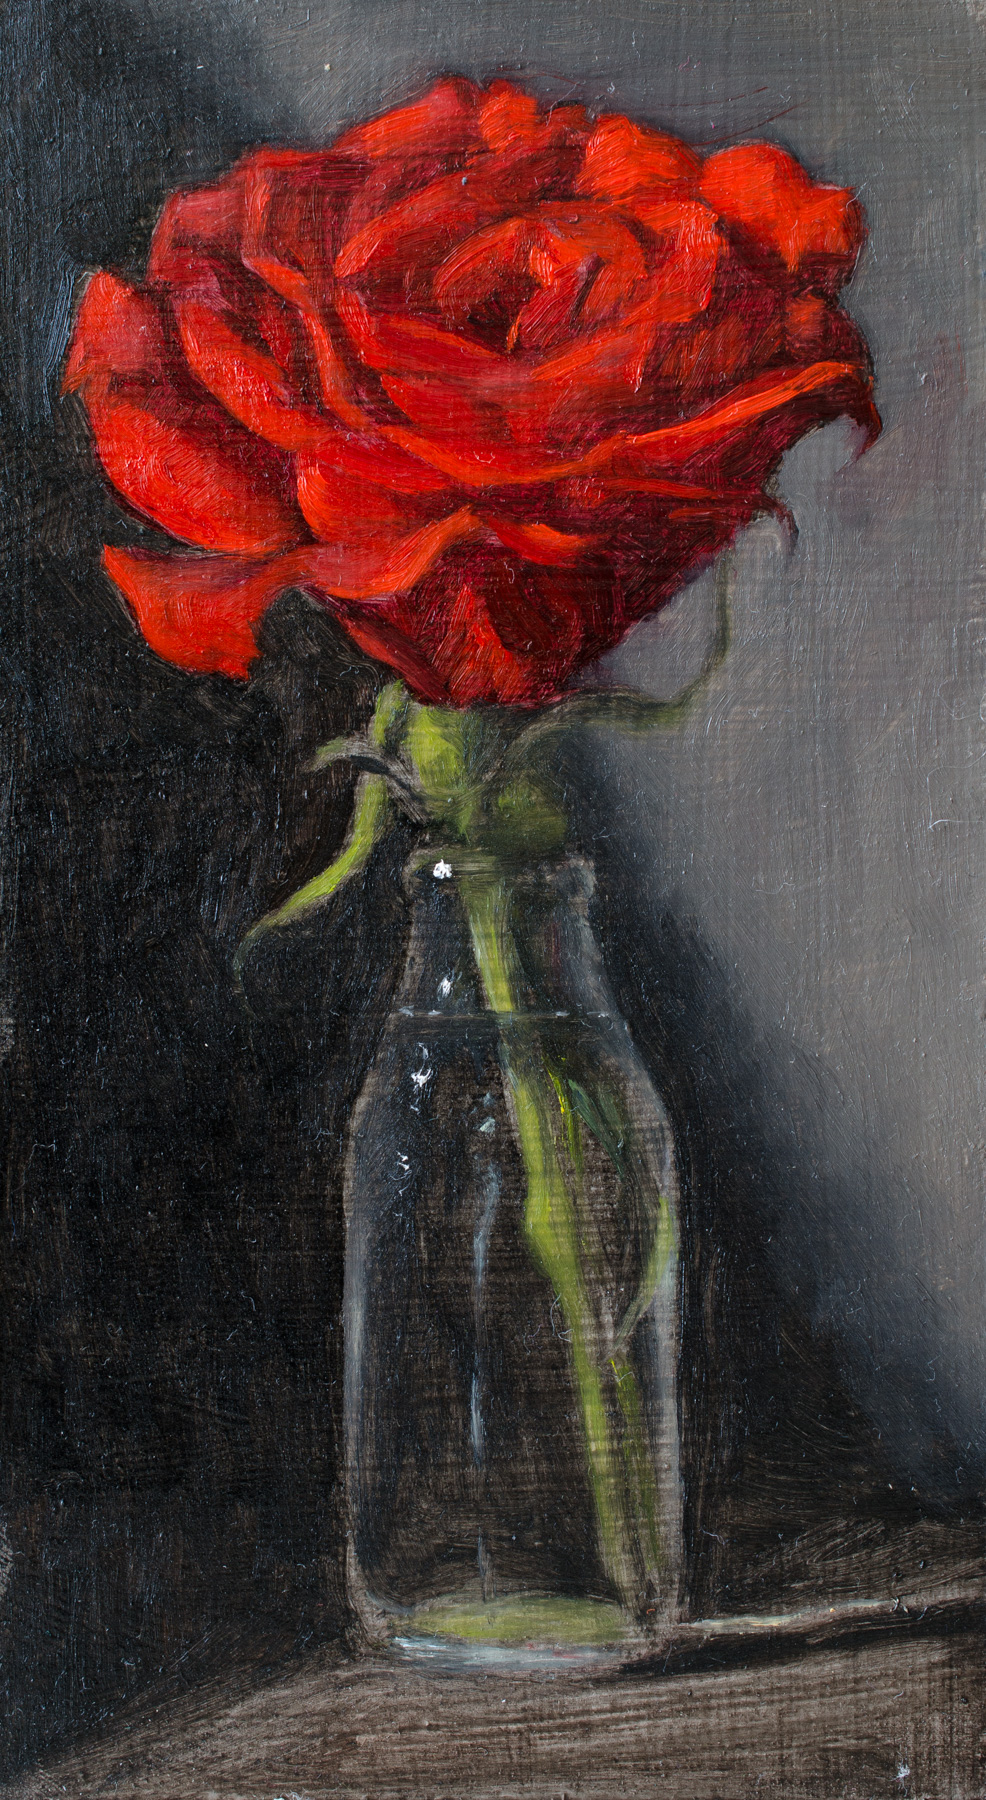 """Unfolding Rose"" oil on wood panel, 4x7''"